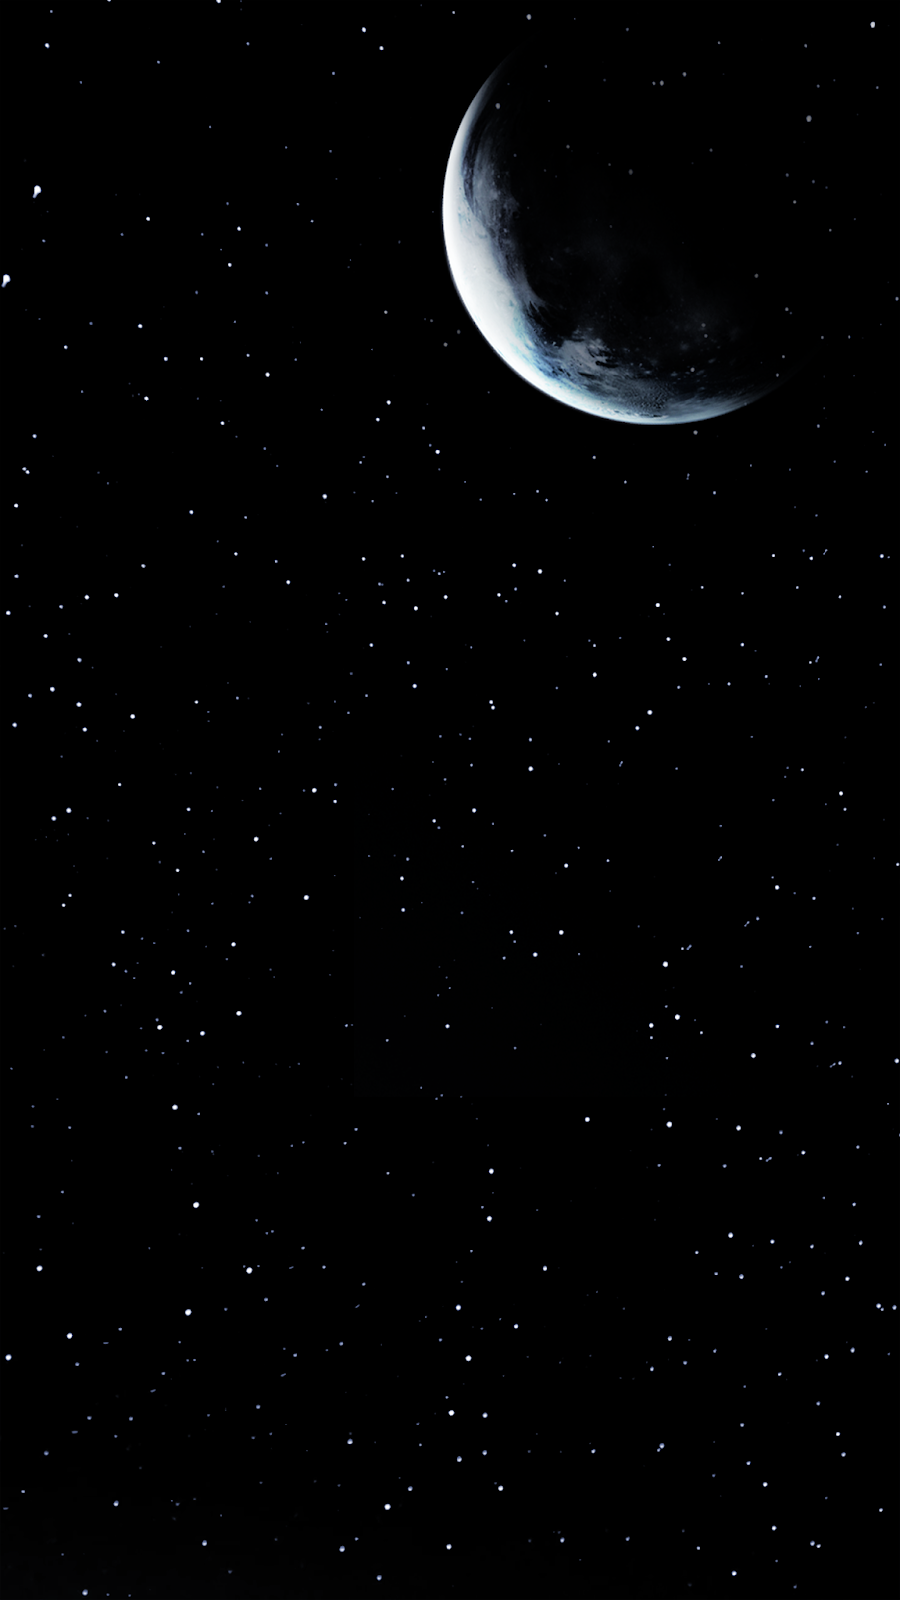 Night Sky Wallpaper Iphone Android Iphone Wallpaper Night Night Sky Wallpaper Iphone Wallpaper Night Sky